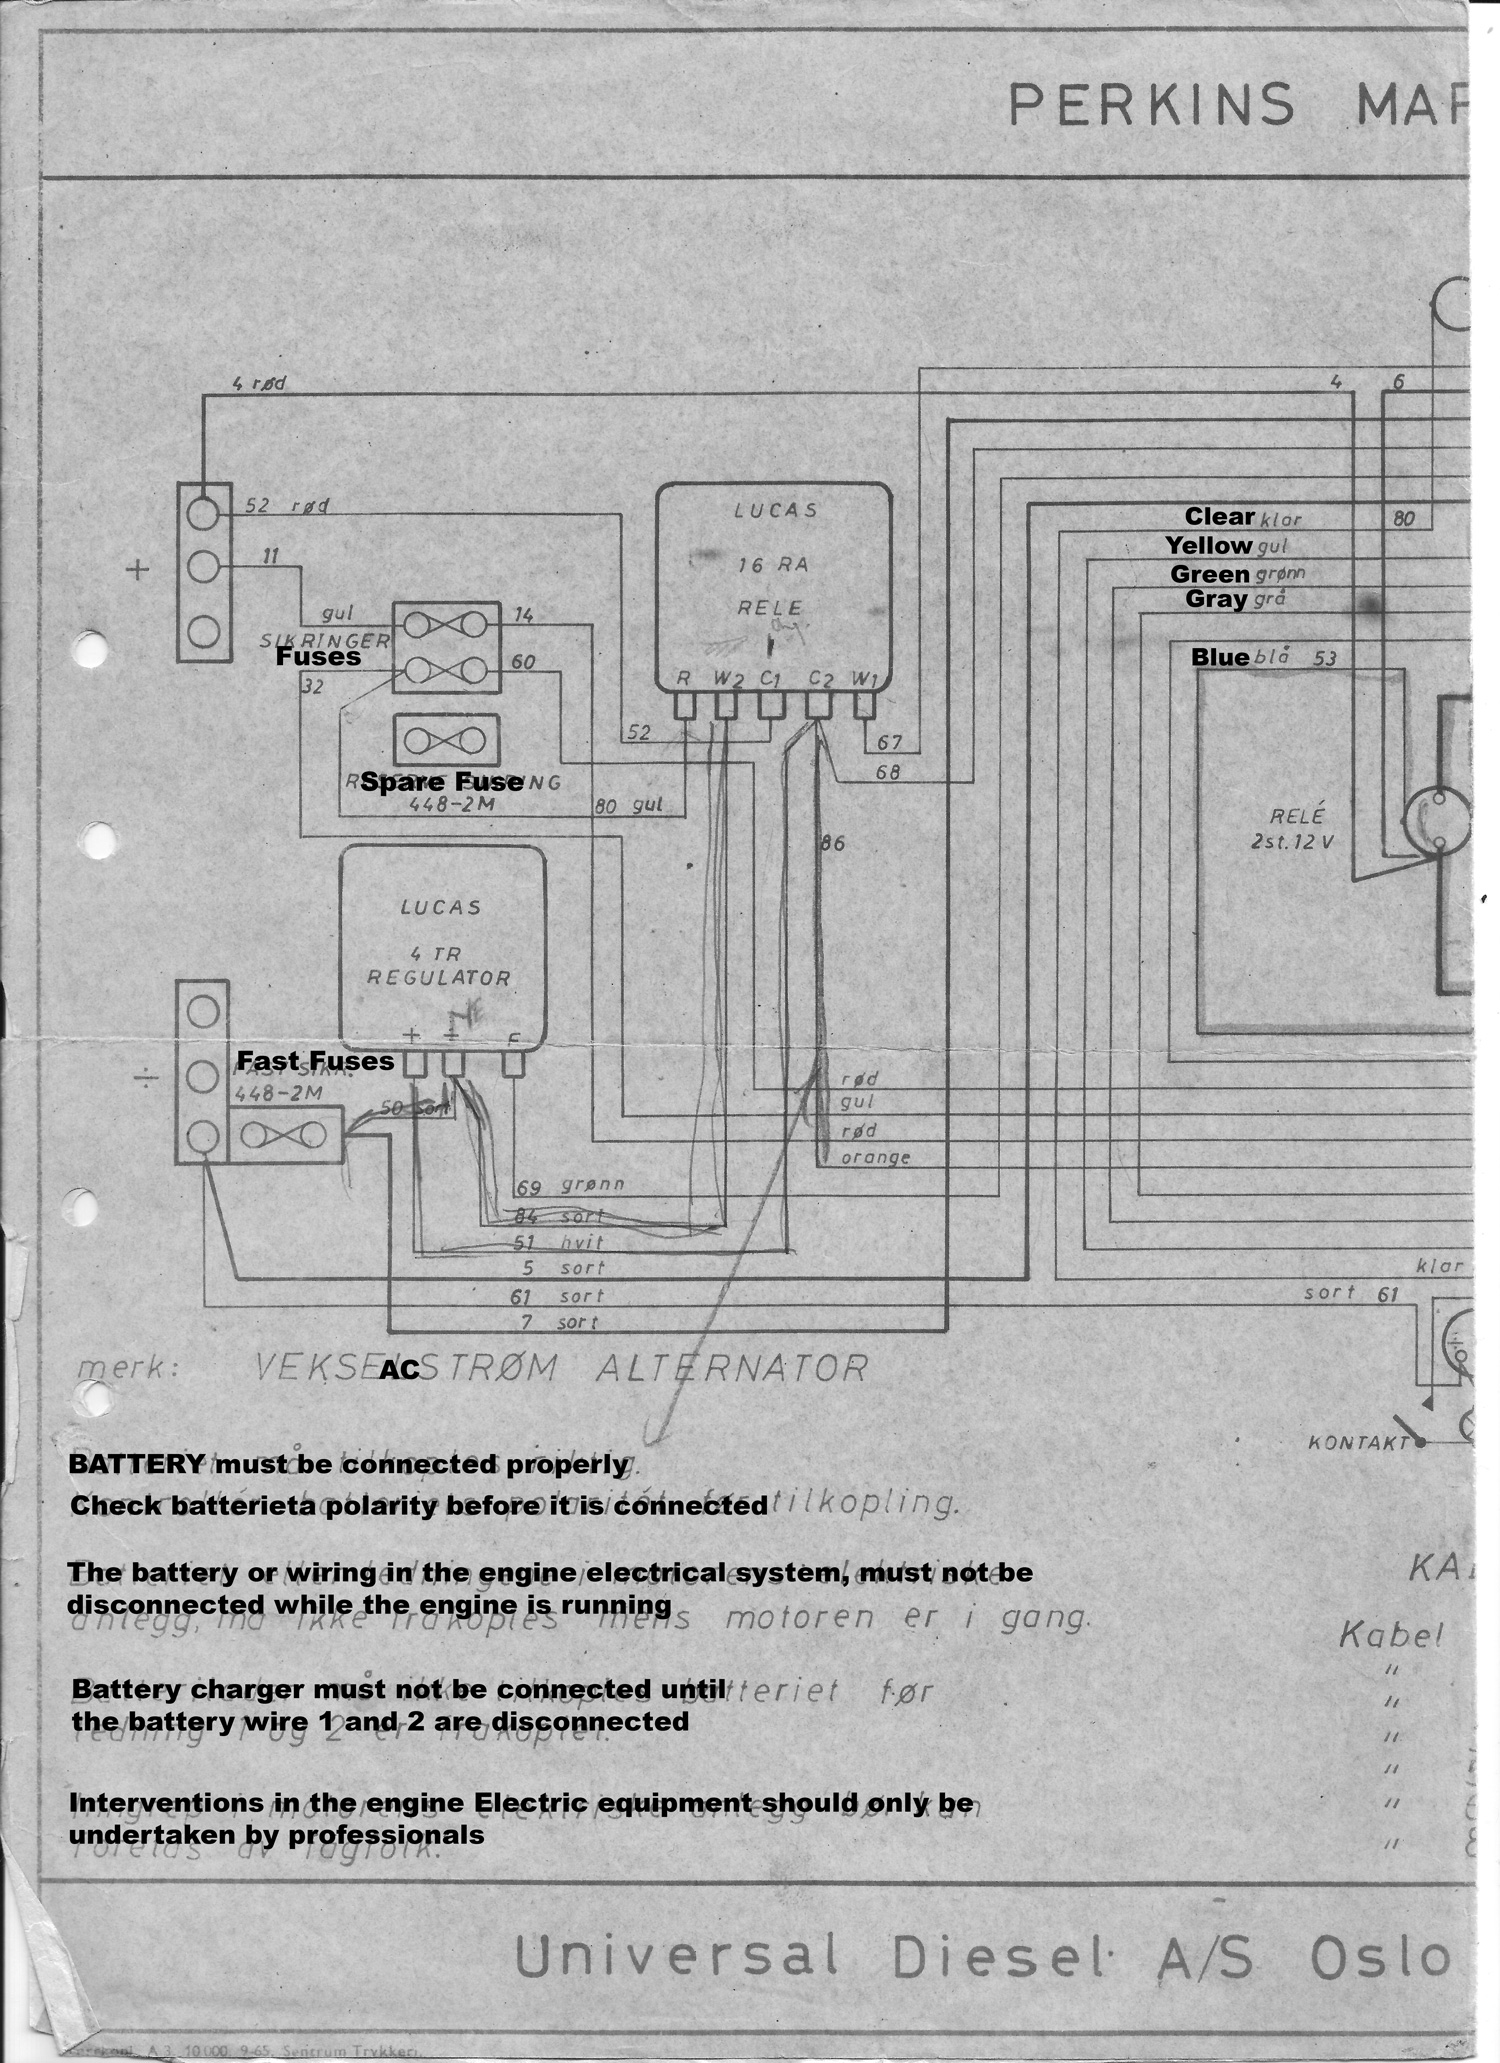 Diagram Wiring Ecm 1225550 - Trusted Wiring Diagram Online on chevy lifters diagram, chevy control module diagram, chevy ecm distributor, chevy fuel injection diagram, chevy ignition diagram, chevy ecm repair, chevy ecm fuse location, chevy engine diagram, chevy horn diagram, chevy ecm flow diagram, chevy transmission diagram, chevy fuel system diagram, chevy clutch diagram, chevy ecm troubleshooting,